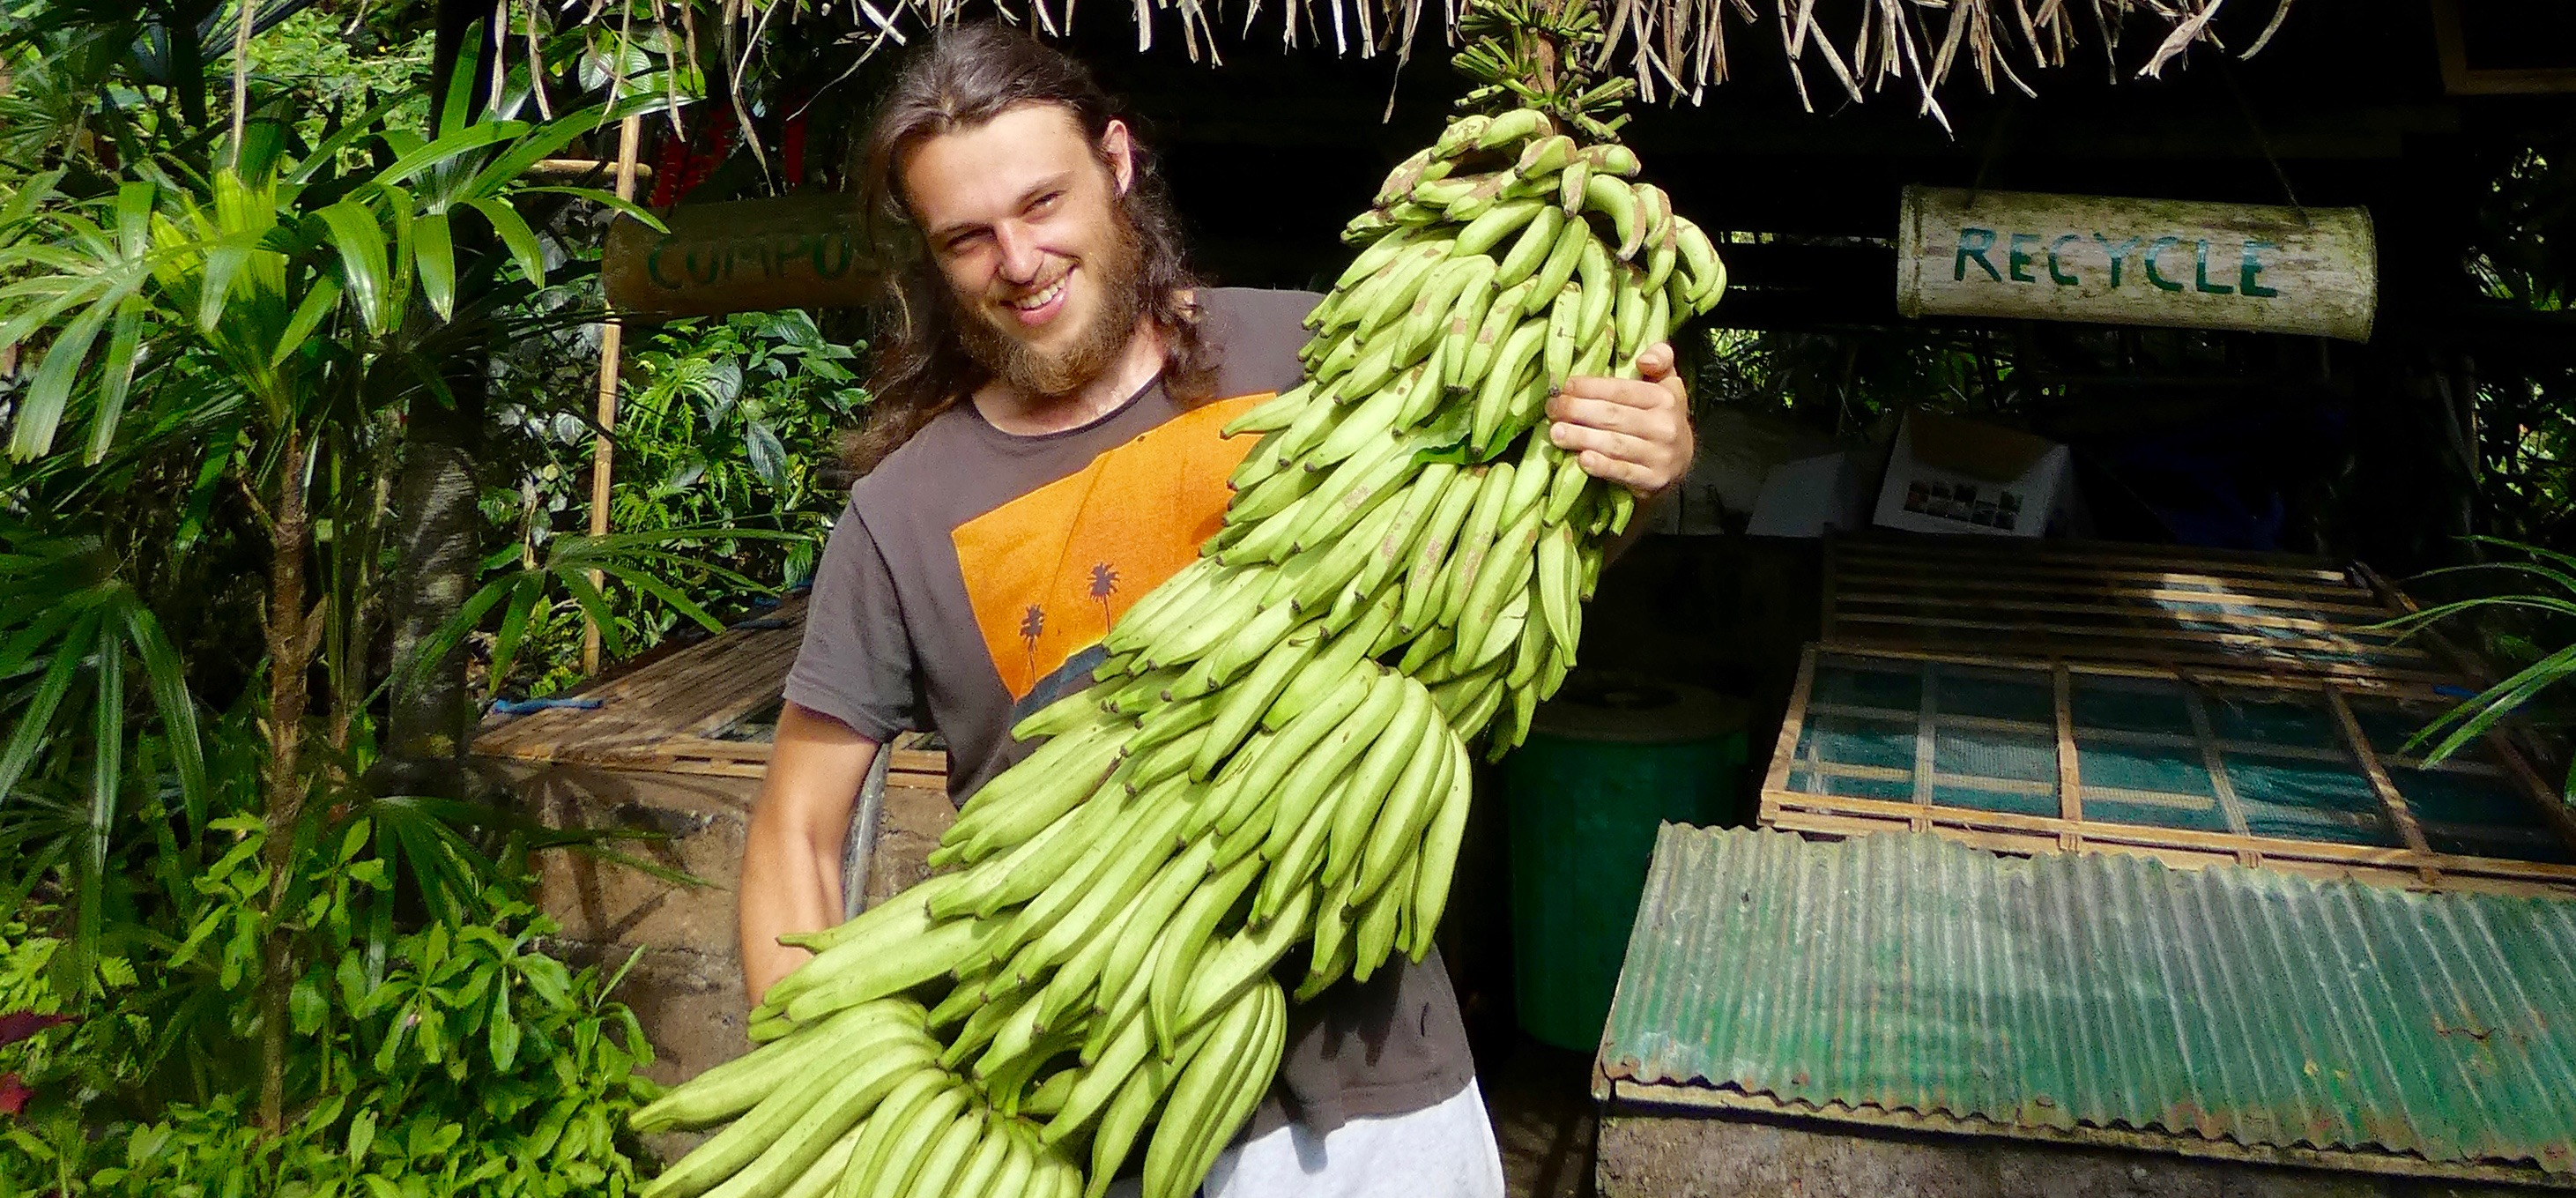 Tropical Organic Fruits Do a Free Garden Tour